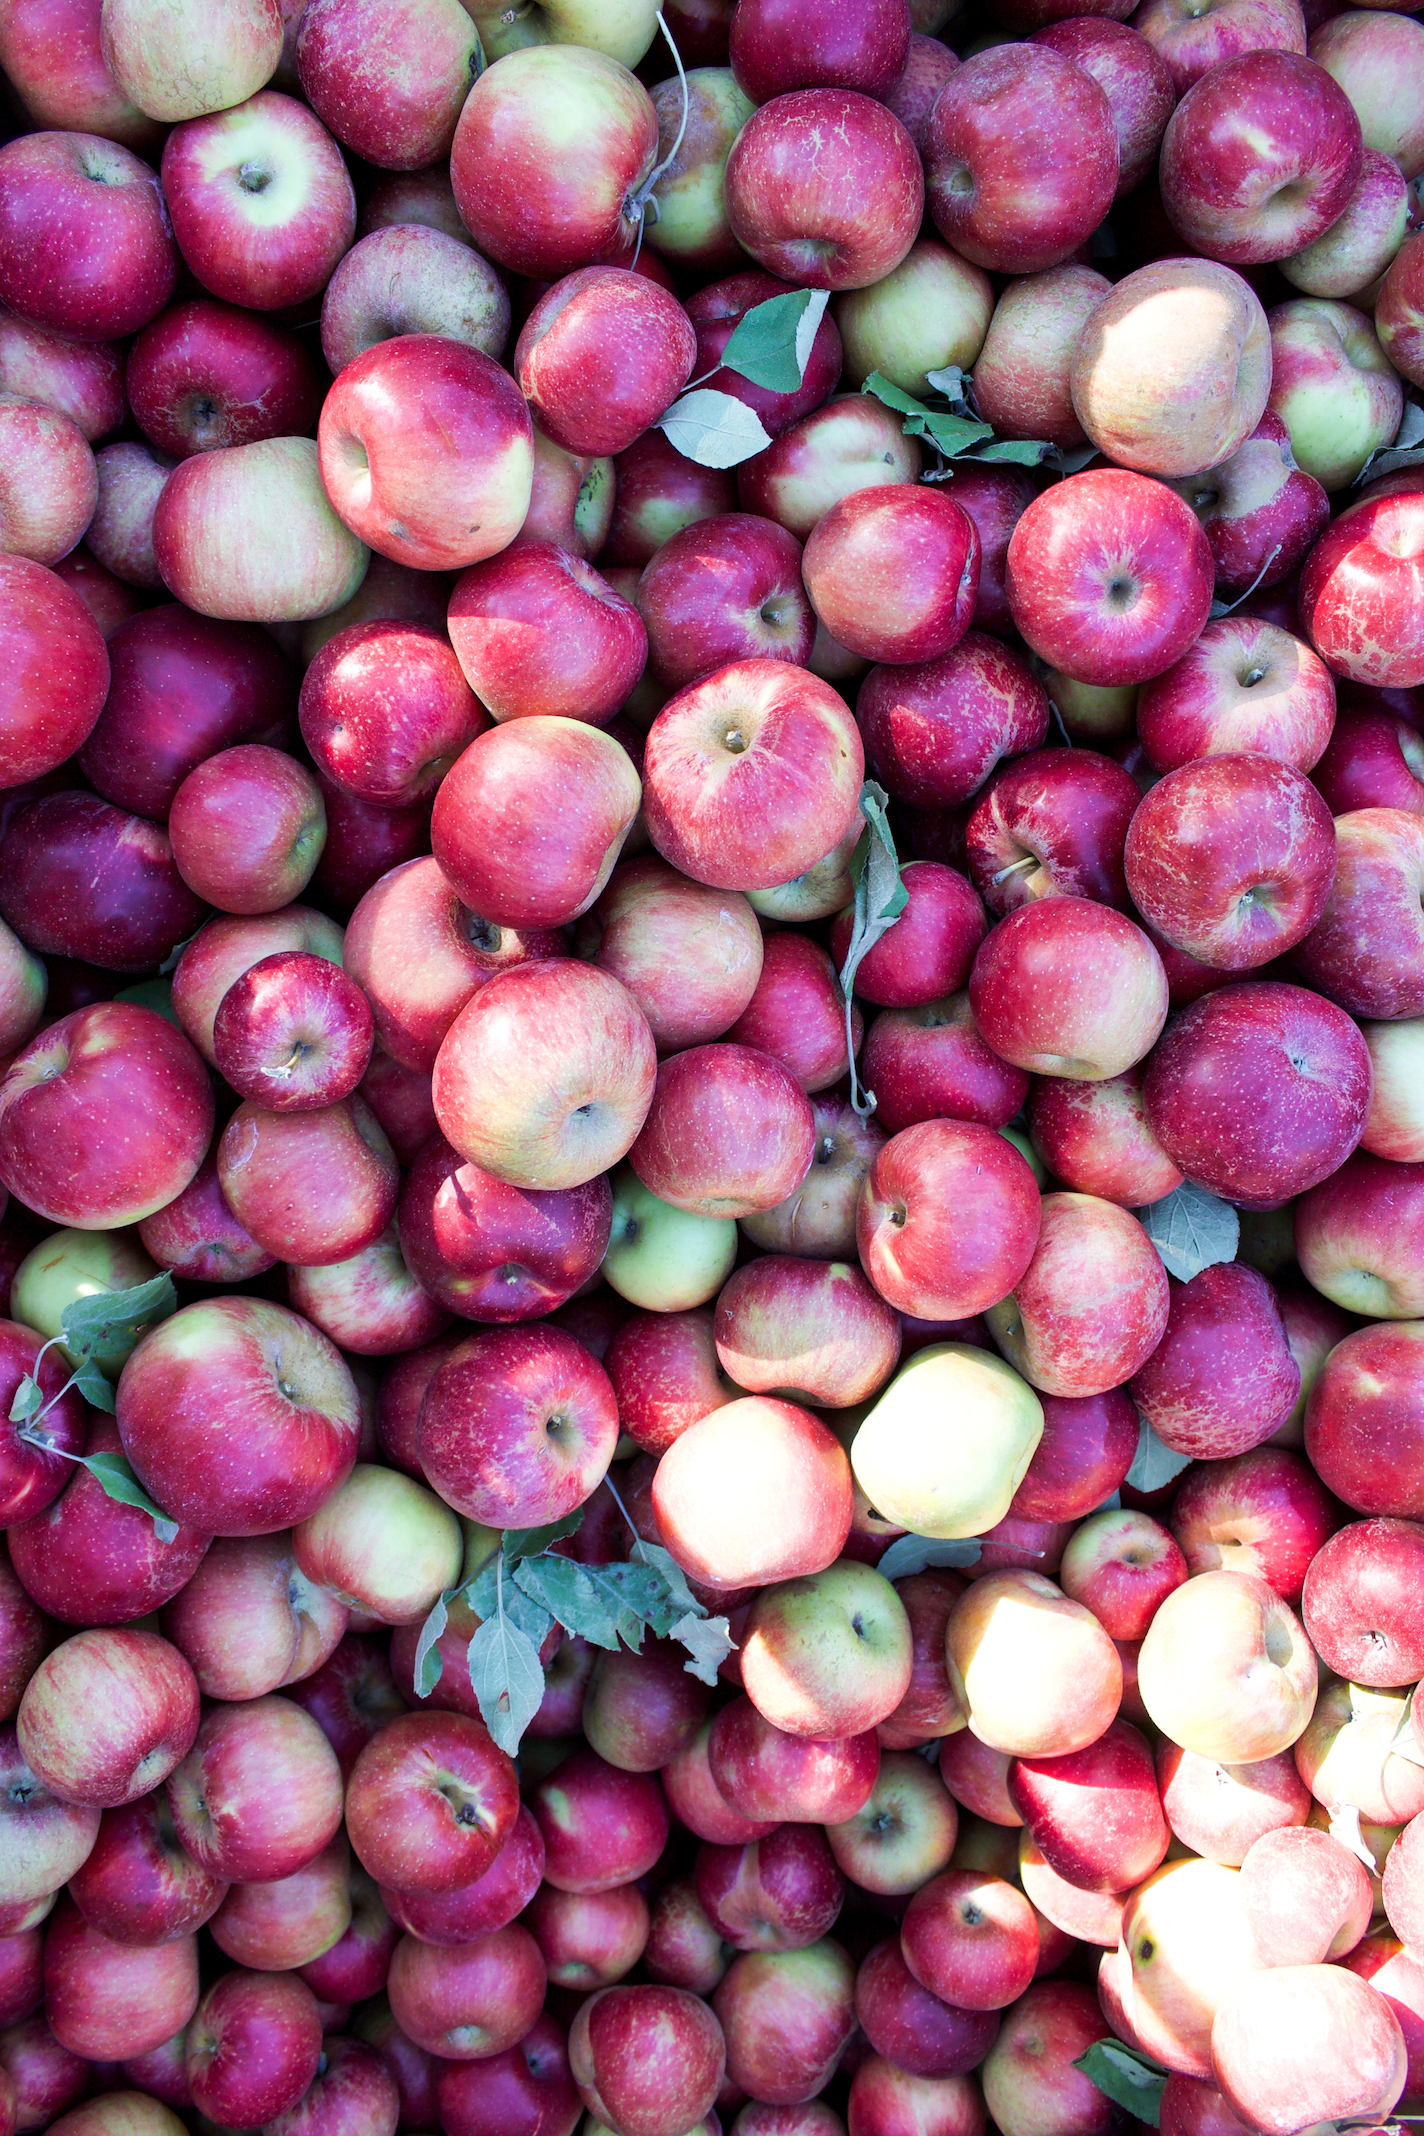 Anderson orchard 6.jpg